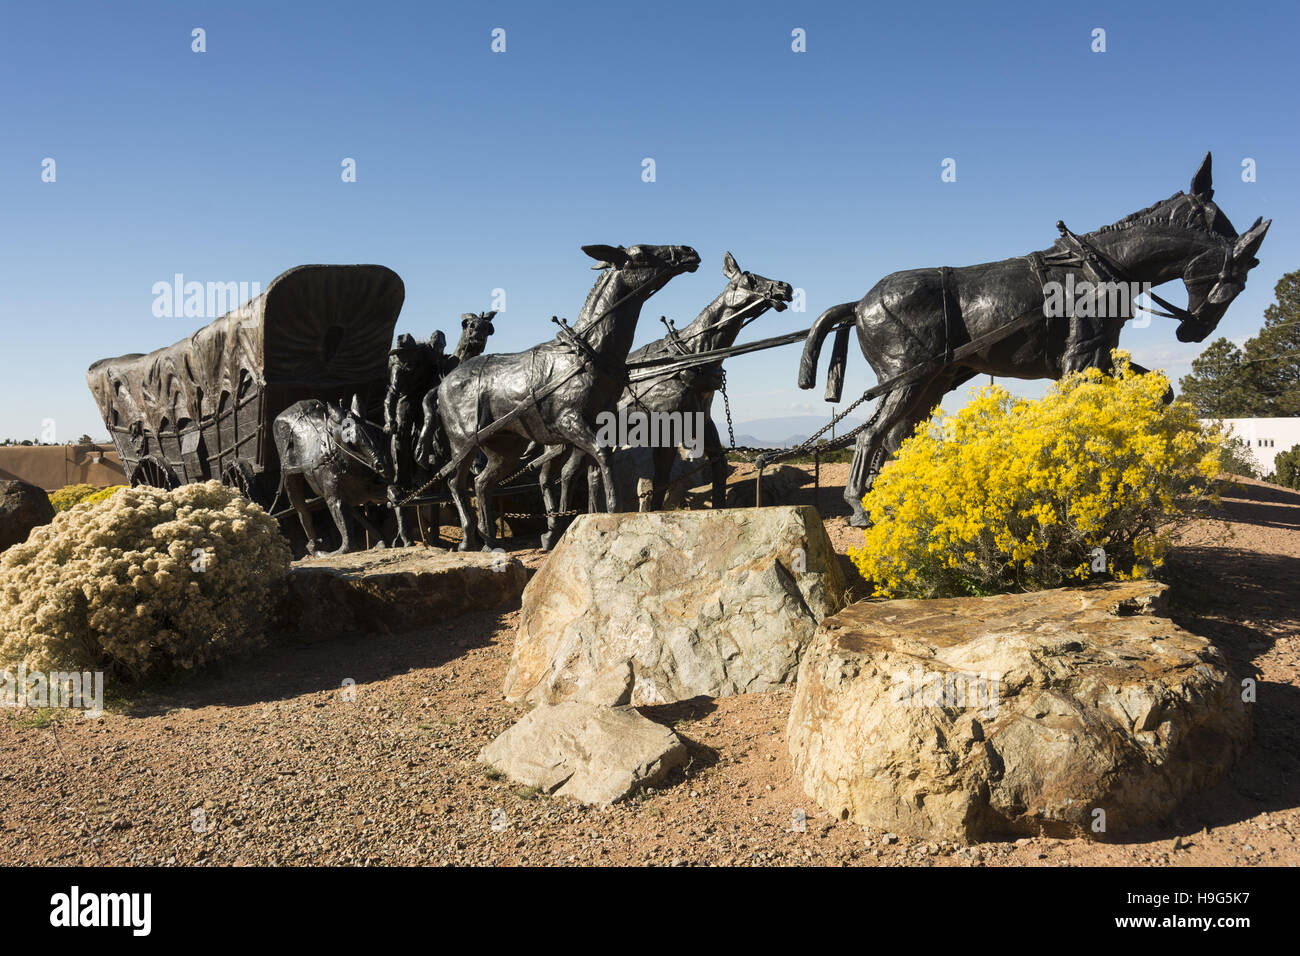 New Mexico, Santa Fe, Museum Hill, Journey's End sculpture - Stock Image